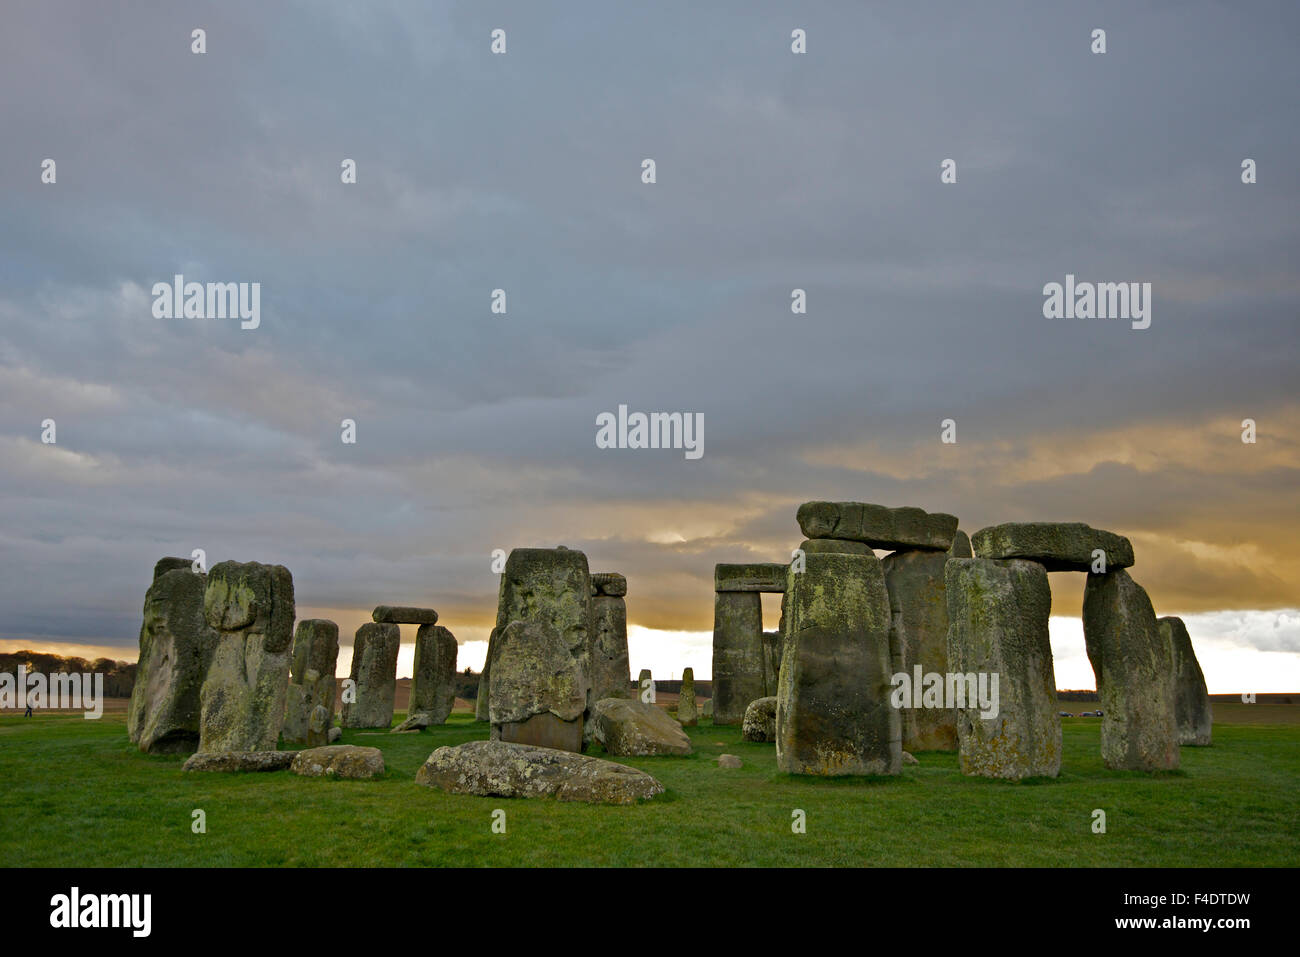 The Neolithic monument Stonehenge beneath a winter sky, just days from the solstice. (Large format sizes available) - Stock Image